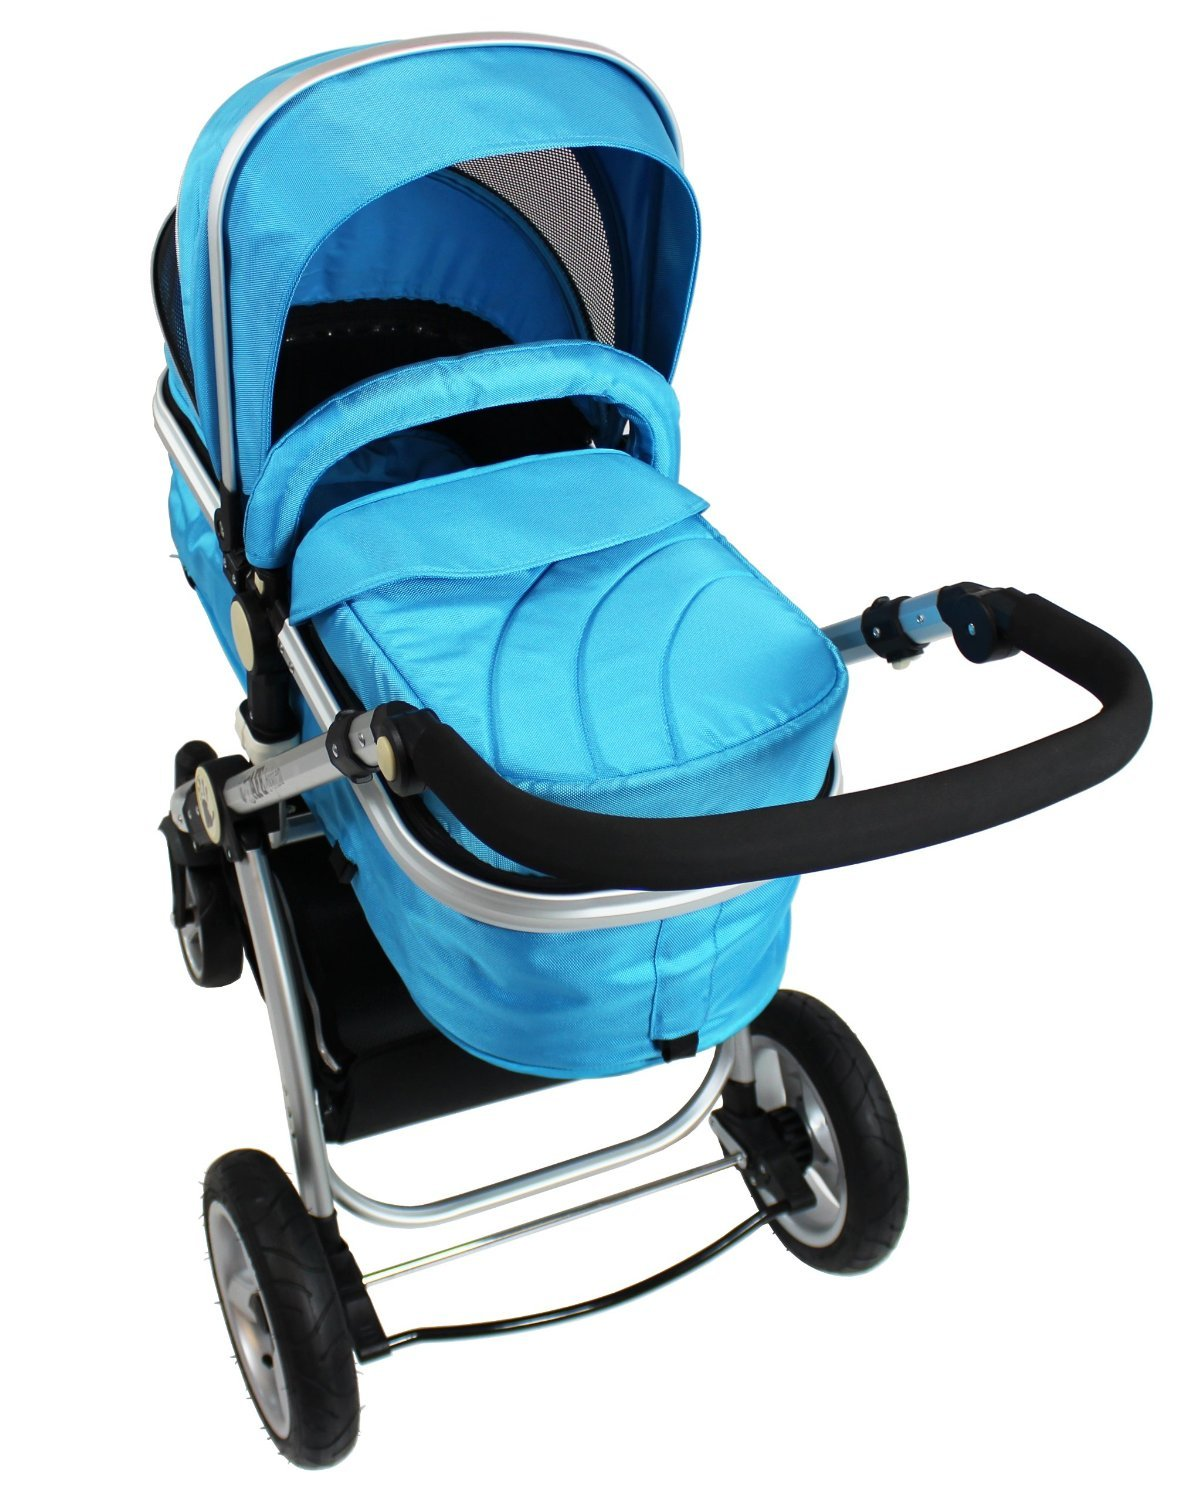 i-Safe System - Ocean Trio Travel System Pram & Luxury Stroller 3 in 1 Complete With Car Seat iSafe  2